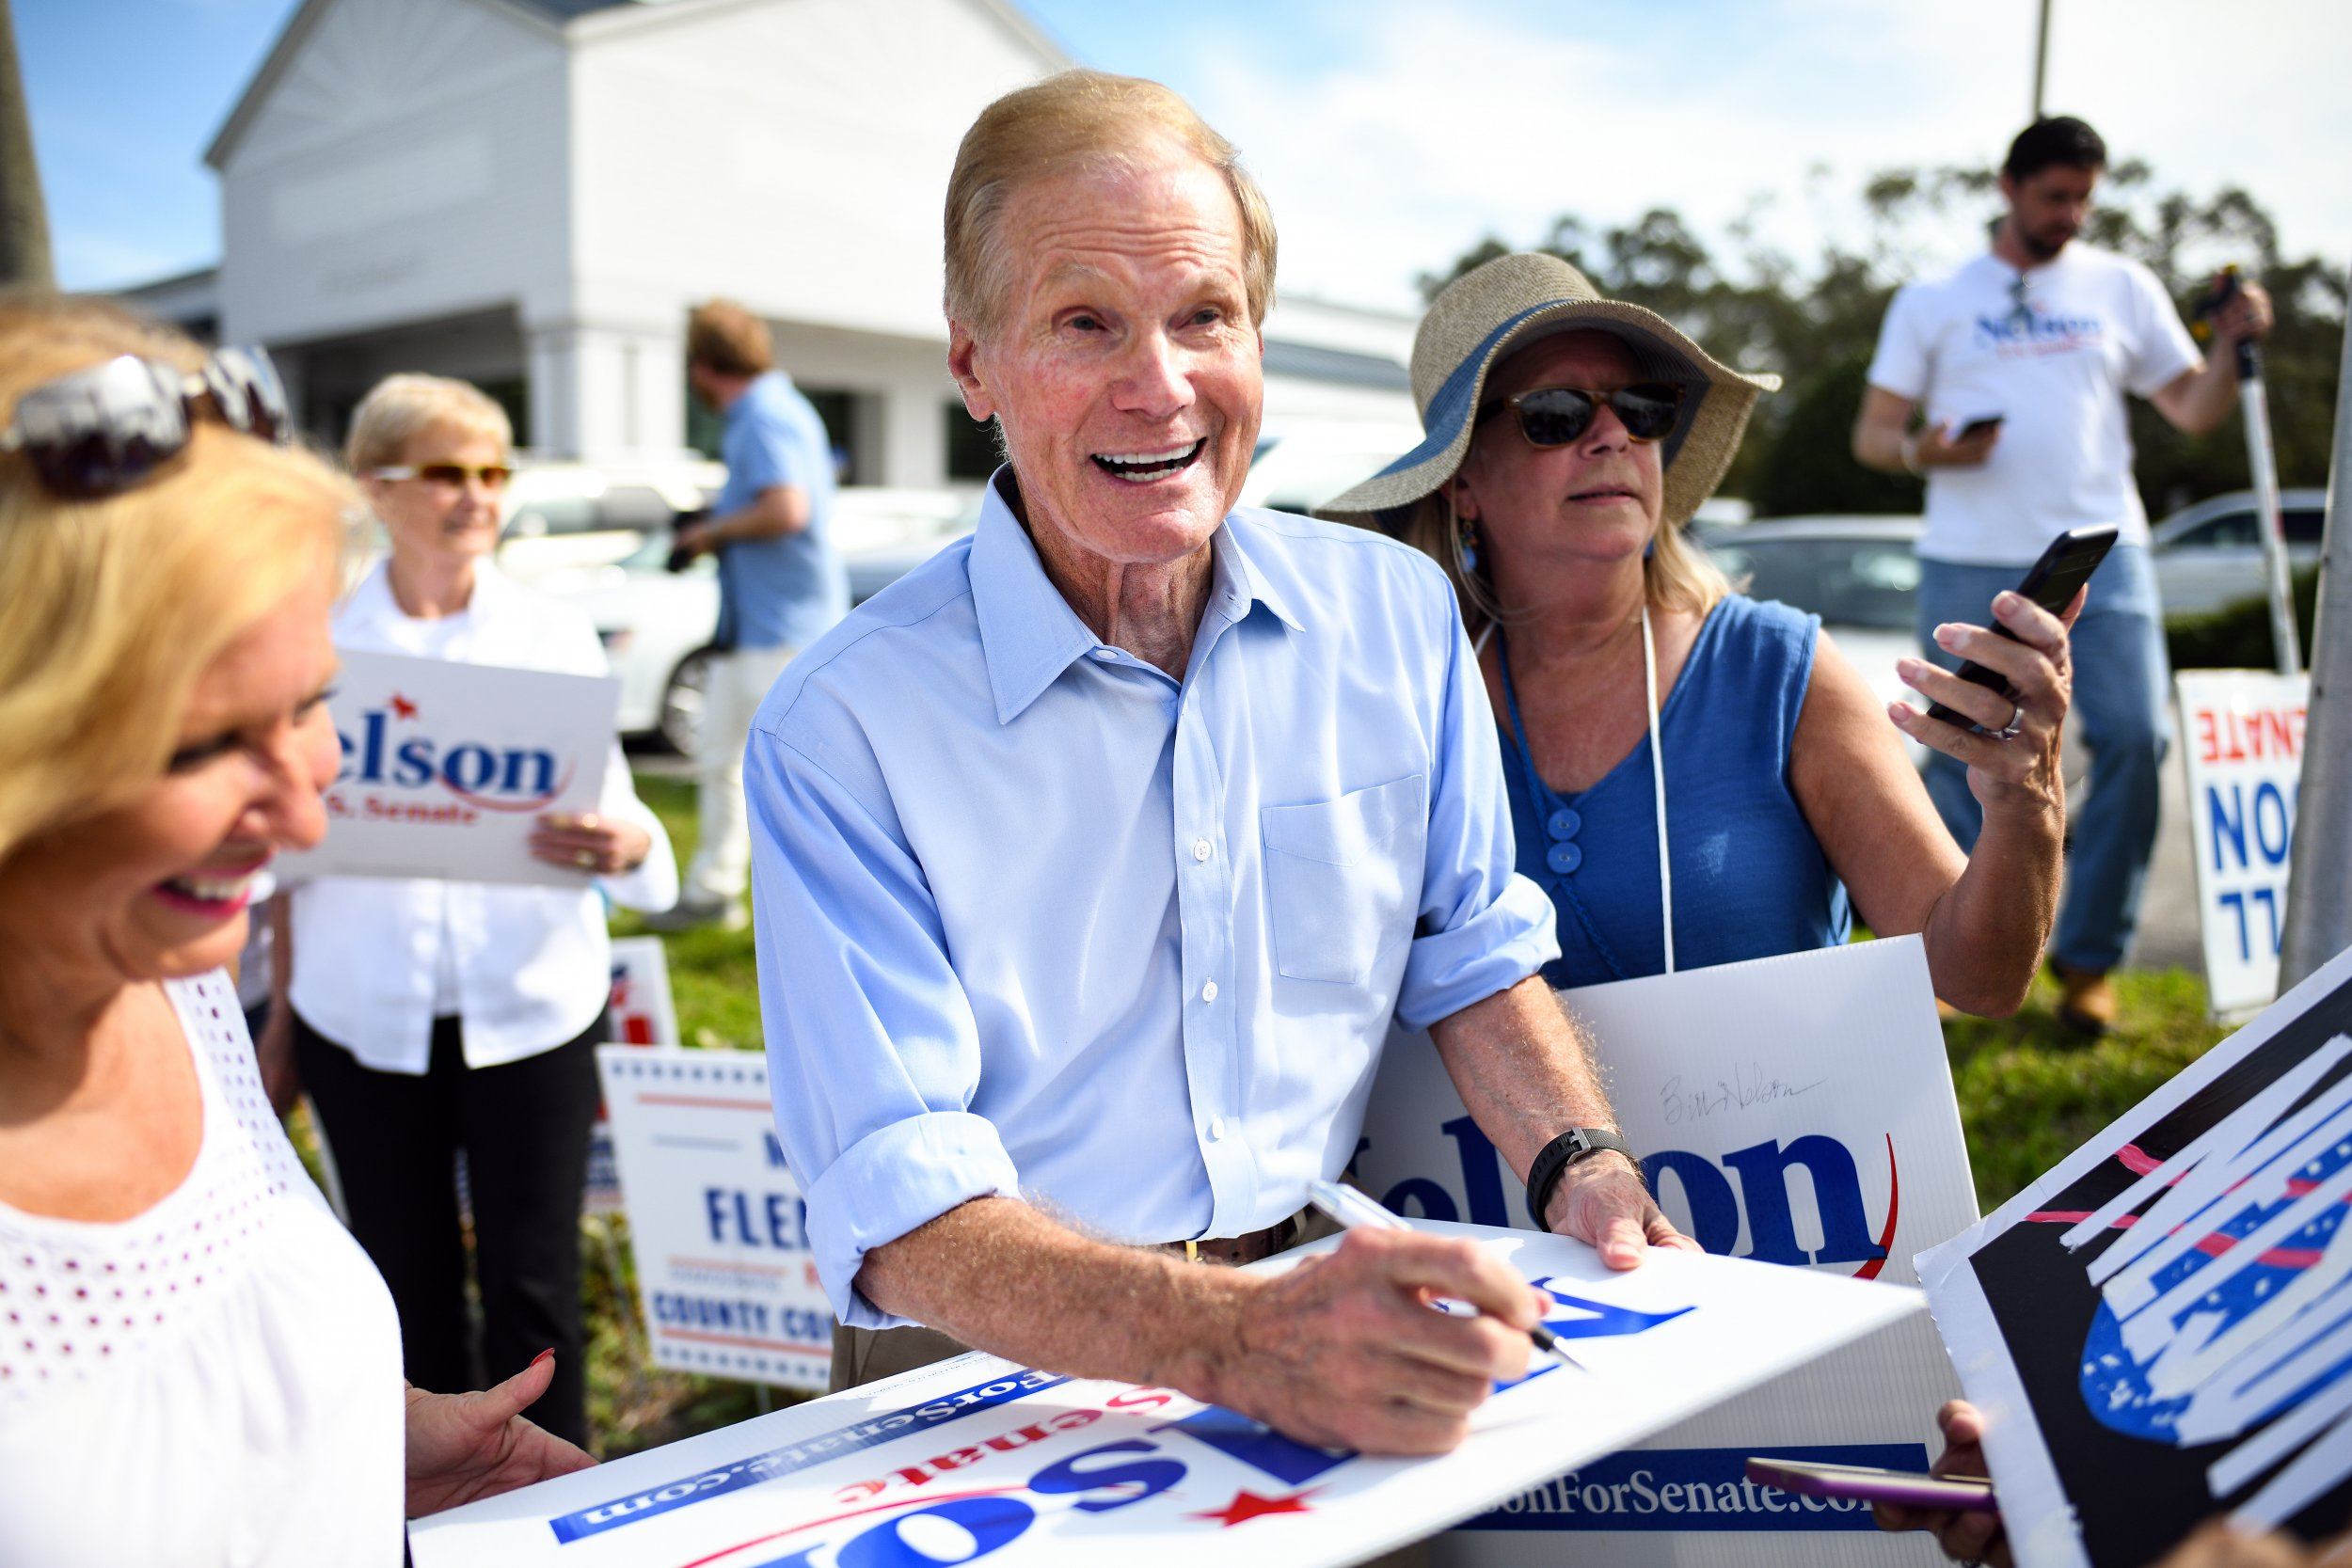 Florida Election Results: Nelson Campaign Says He'll Be Victorious, Prepared to Take Legal Action